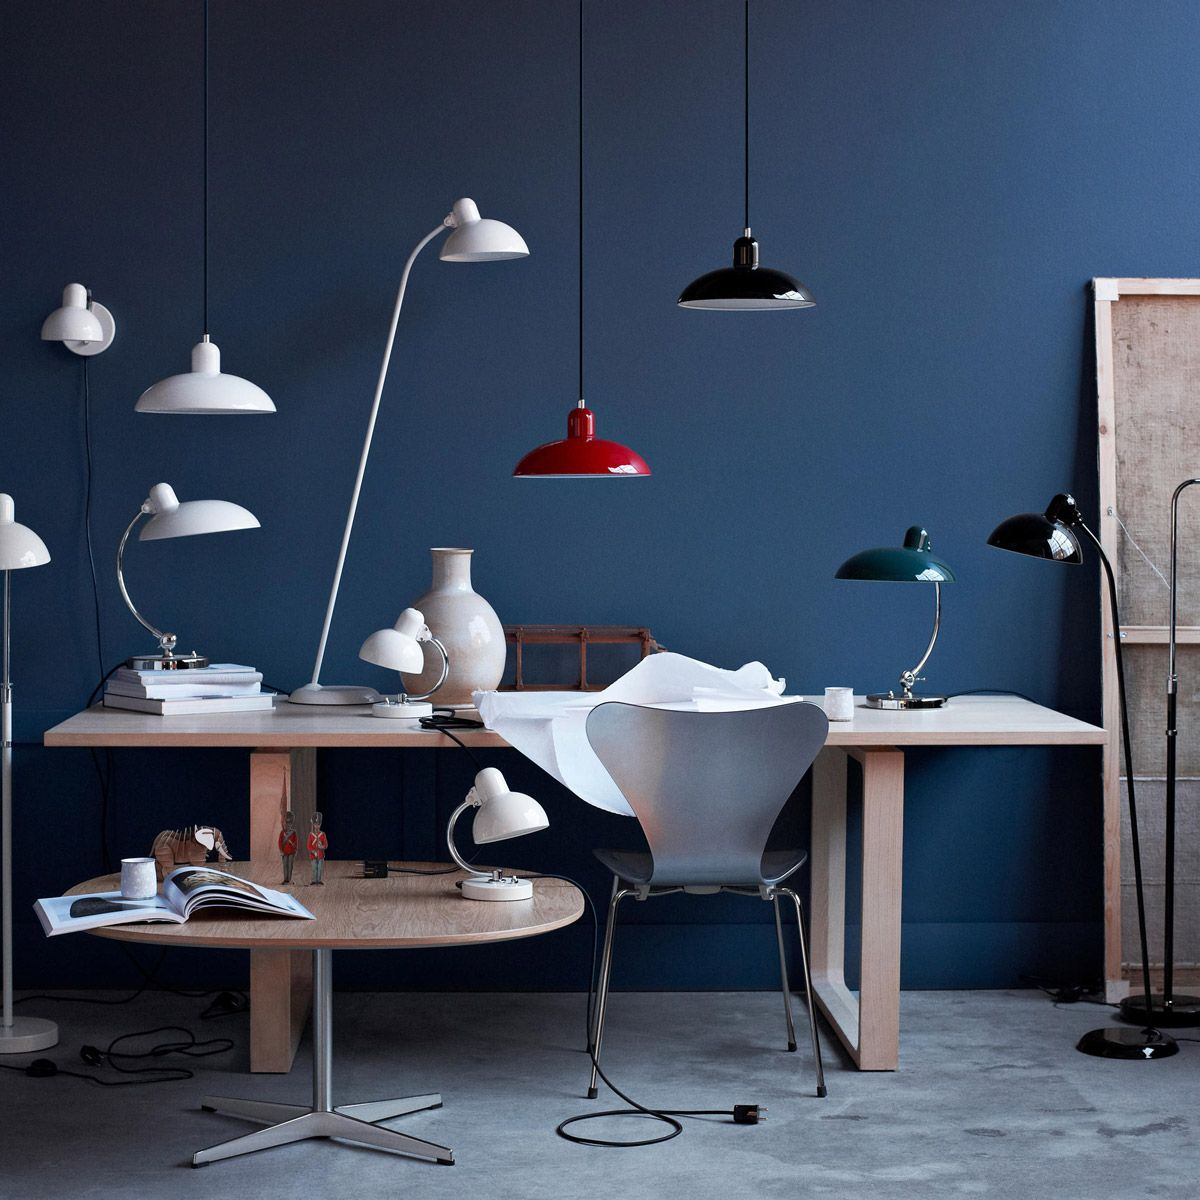 Kaiser Idell 6631 lamp by Christian Dell edited by Light Years